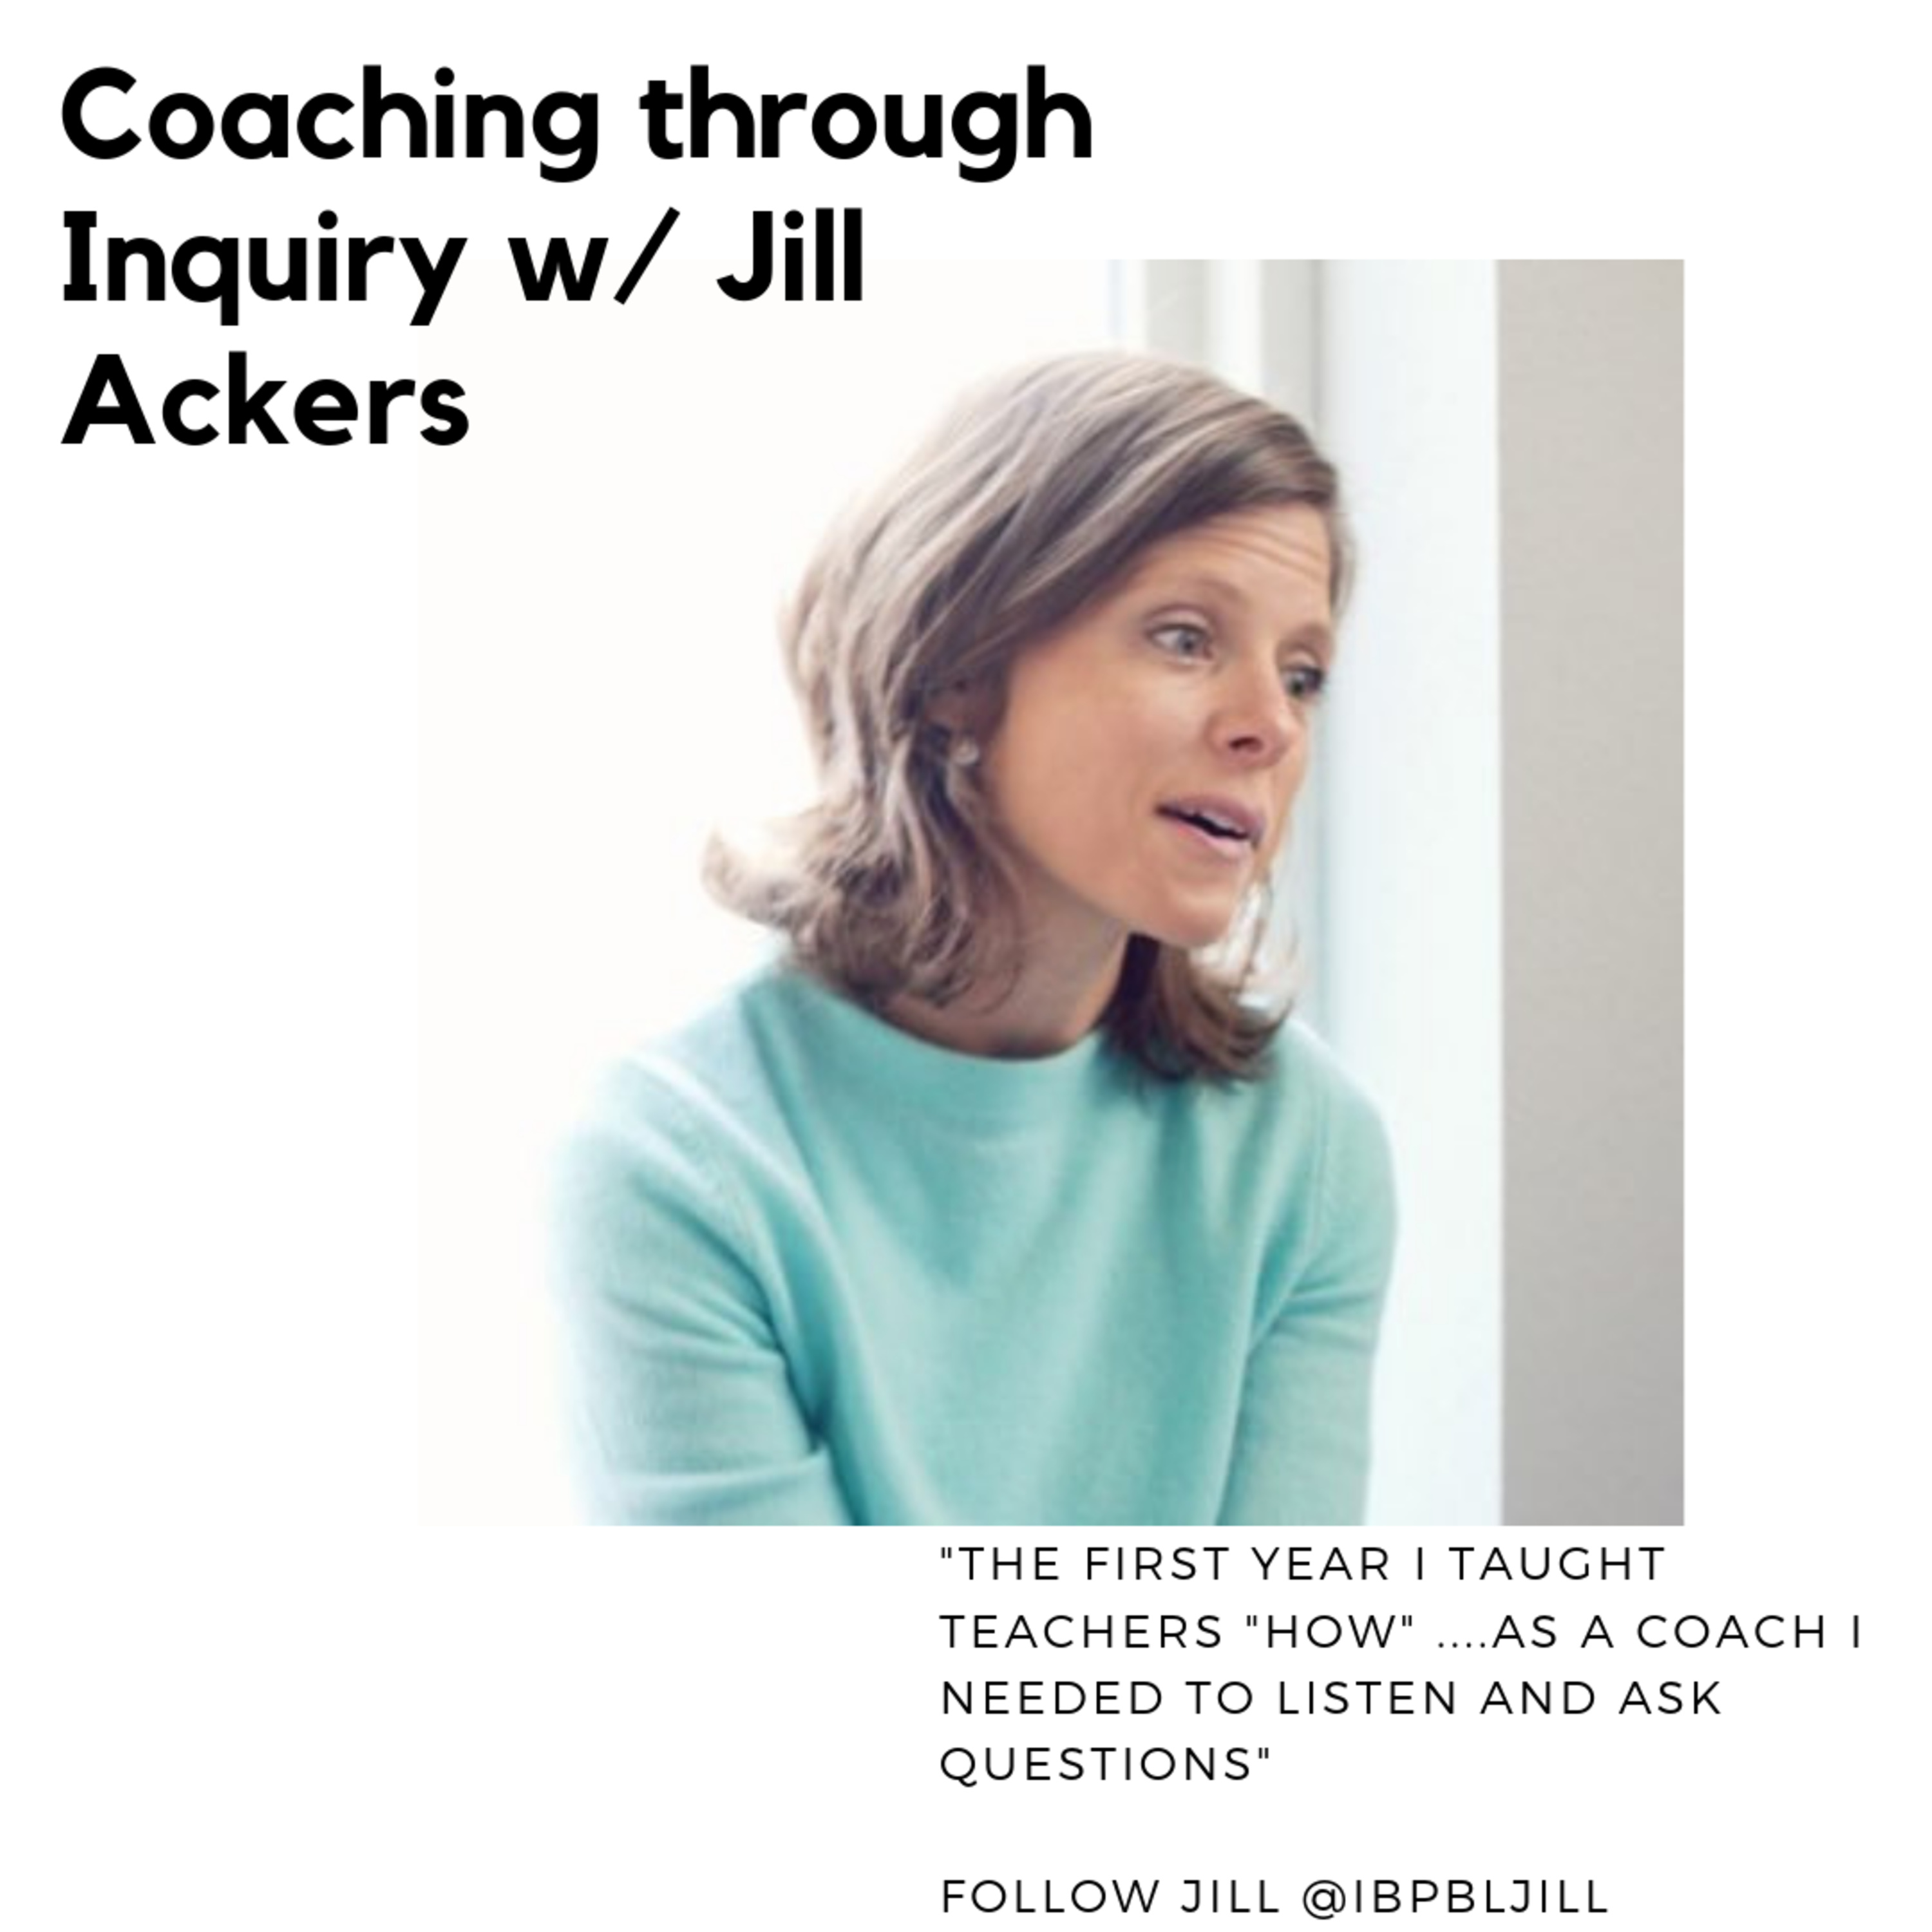 Coaching through Inquiry: Jill Ackers shares how she uses the power of questioning to help teachers execute PBL!